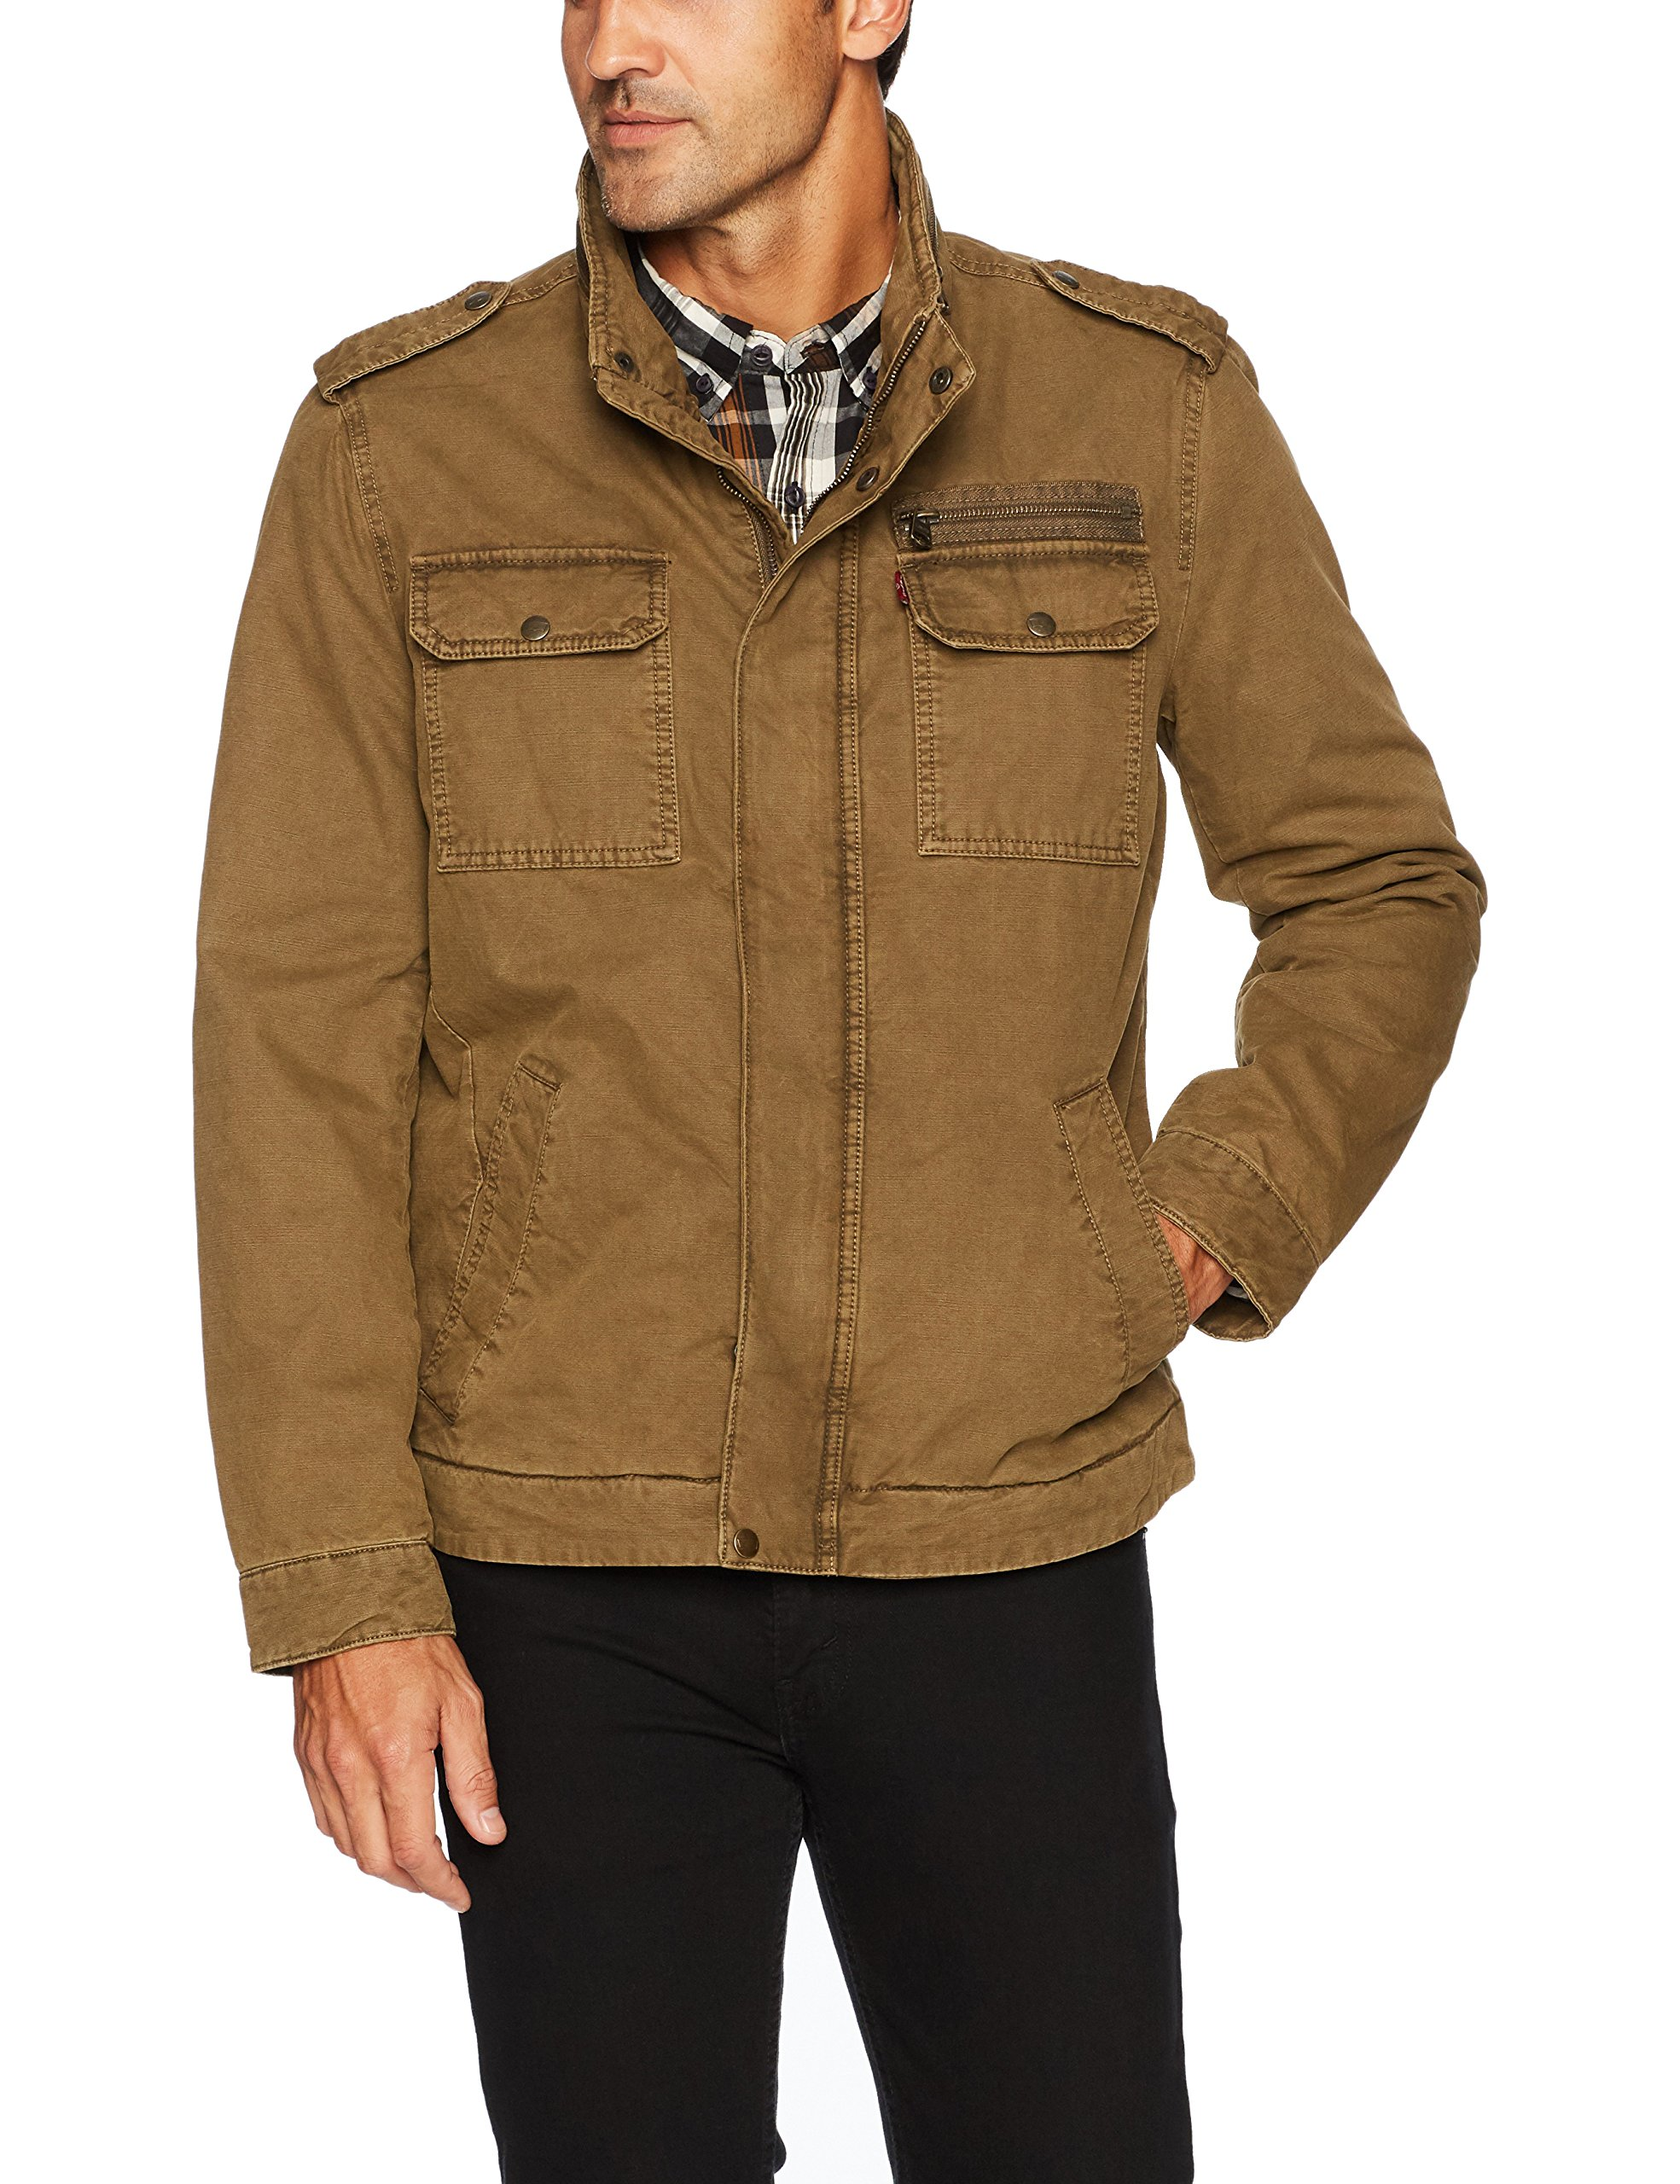 Levi's Men's Washed Cotton Two Pocket Miliatary Jacket (Regular and Big and Tall Sizes), Khaki, Small by Levi's